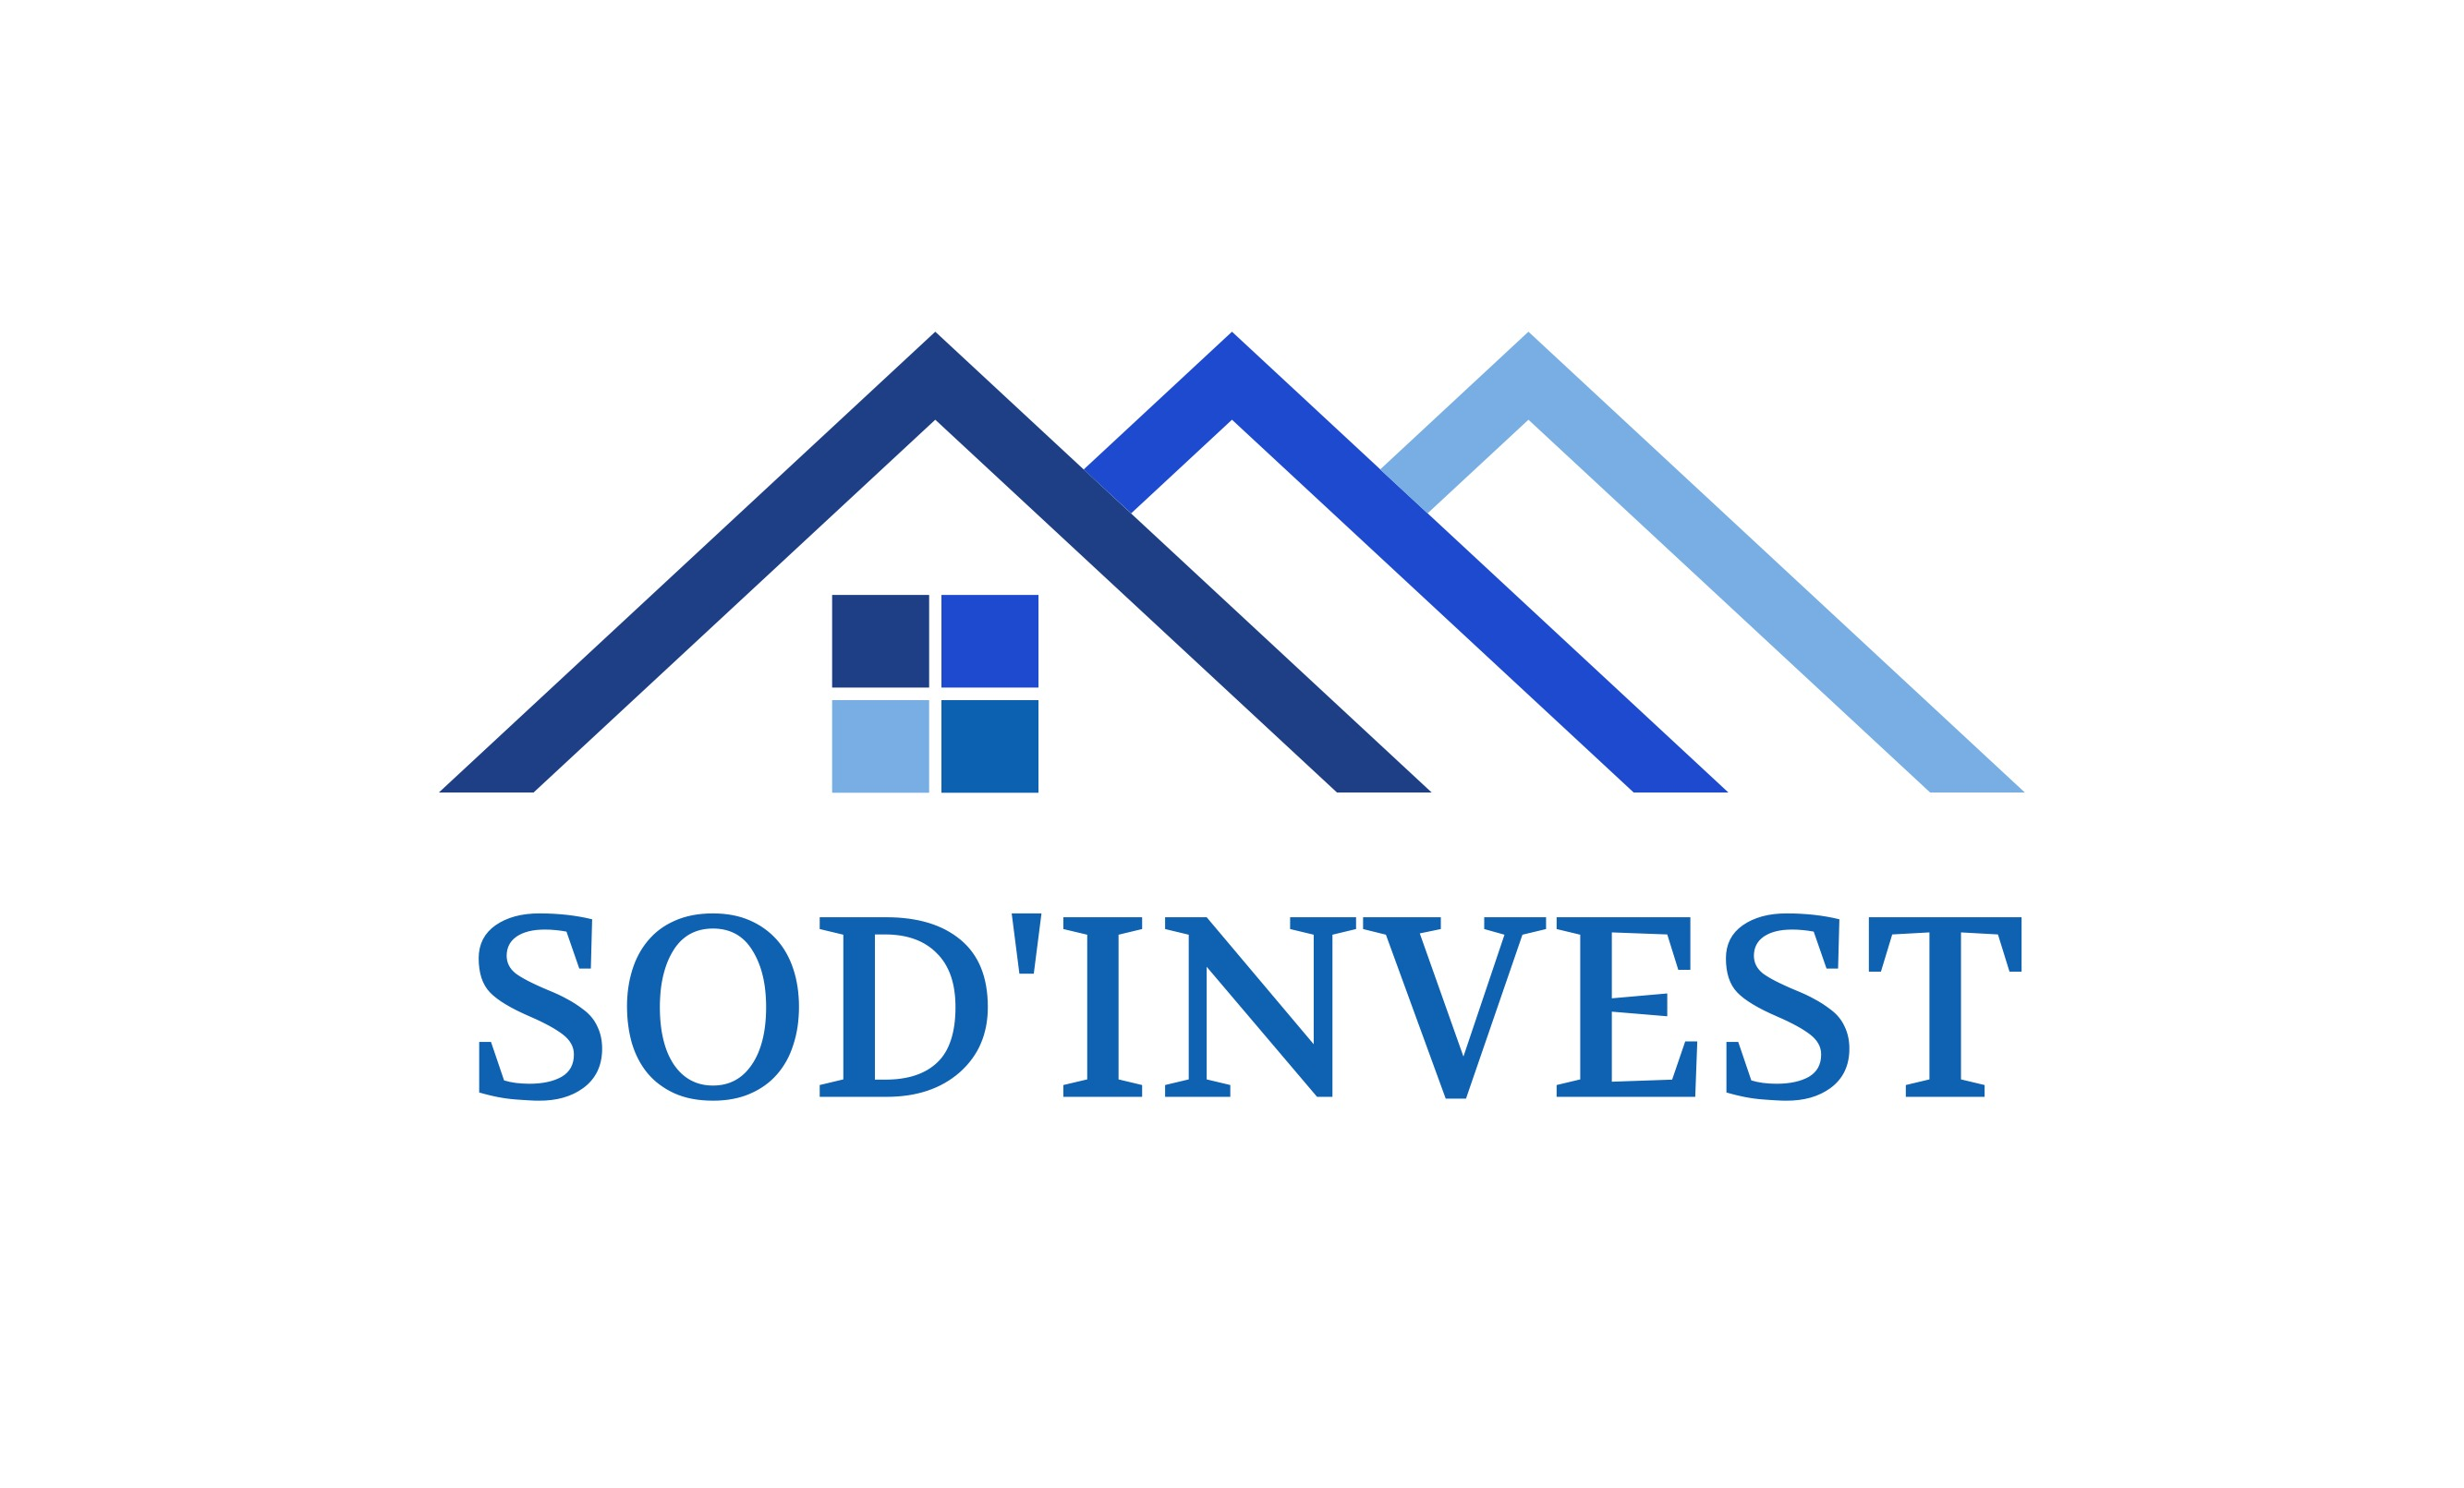 SOD'INVEST